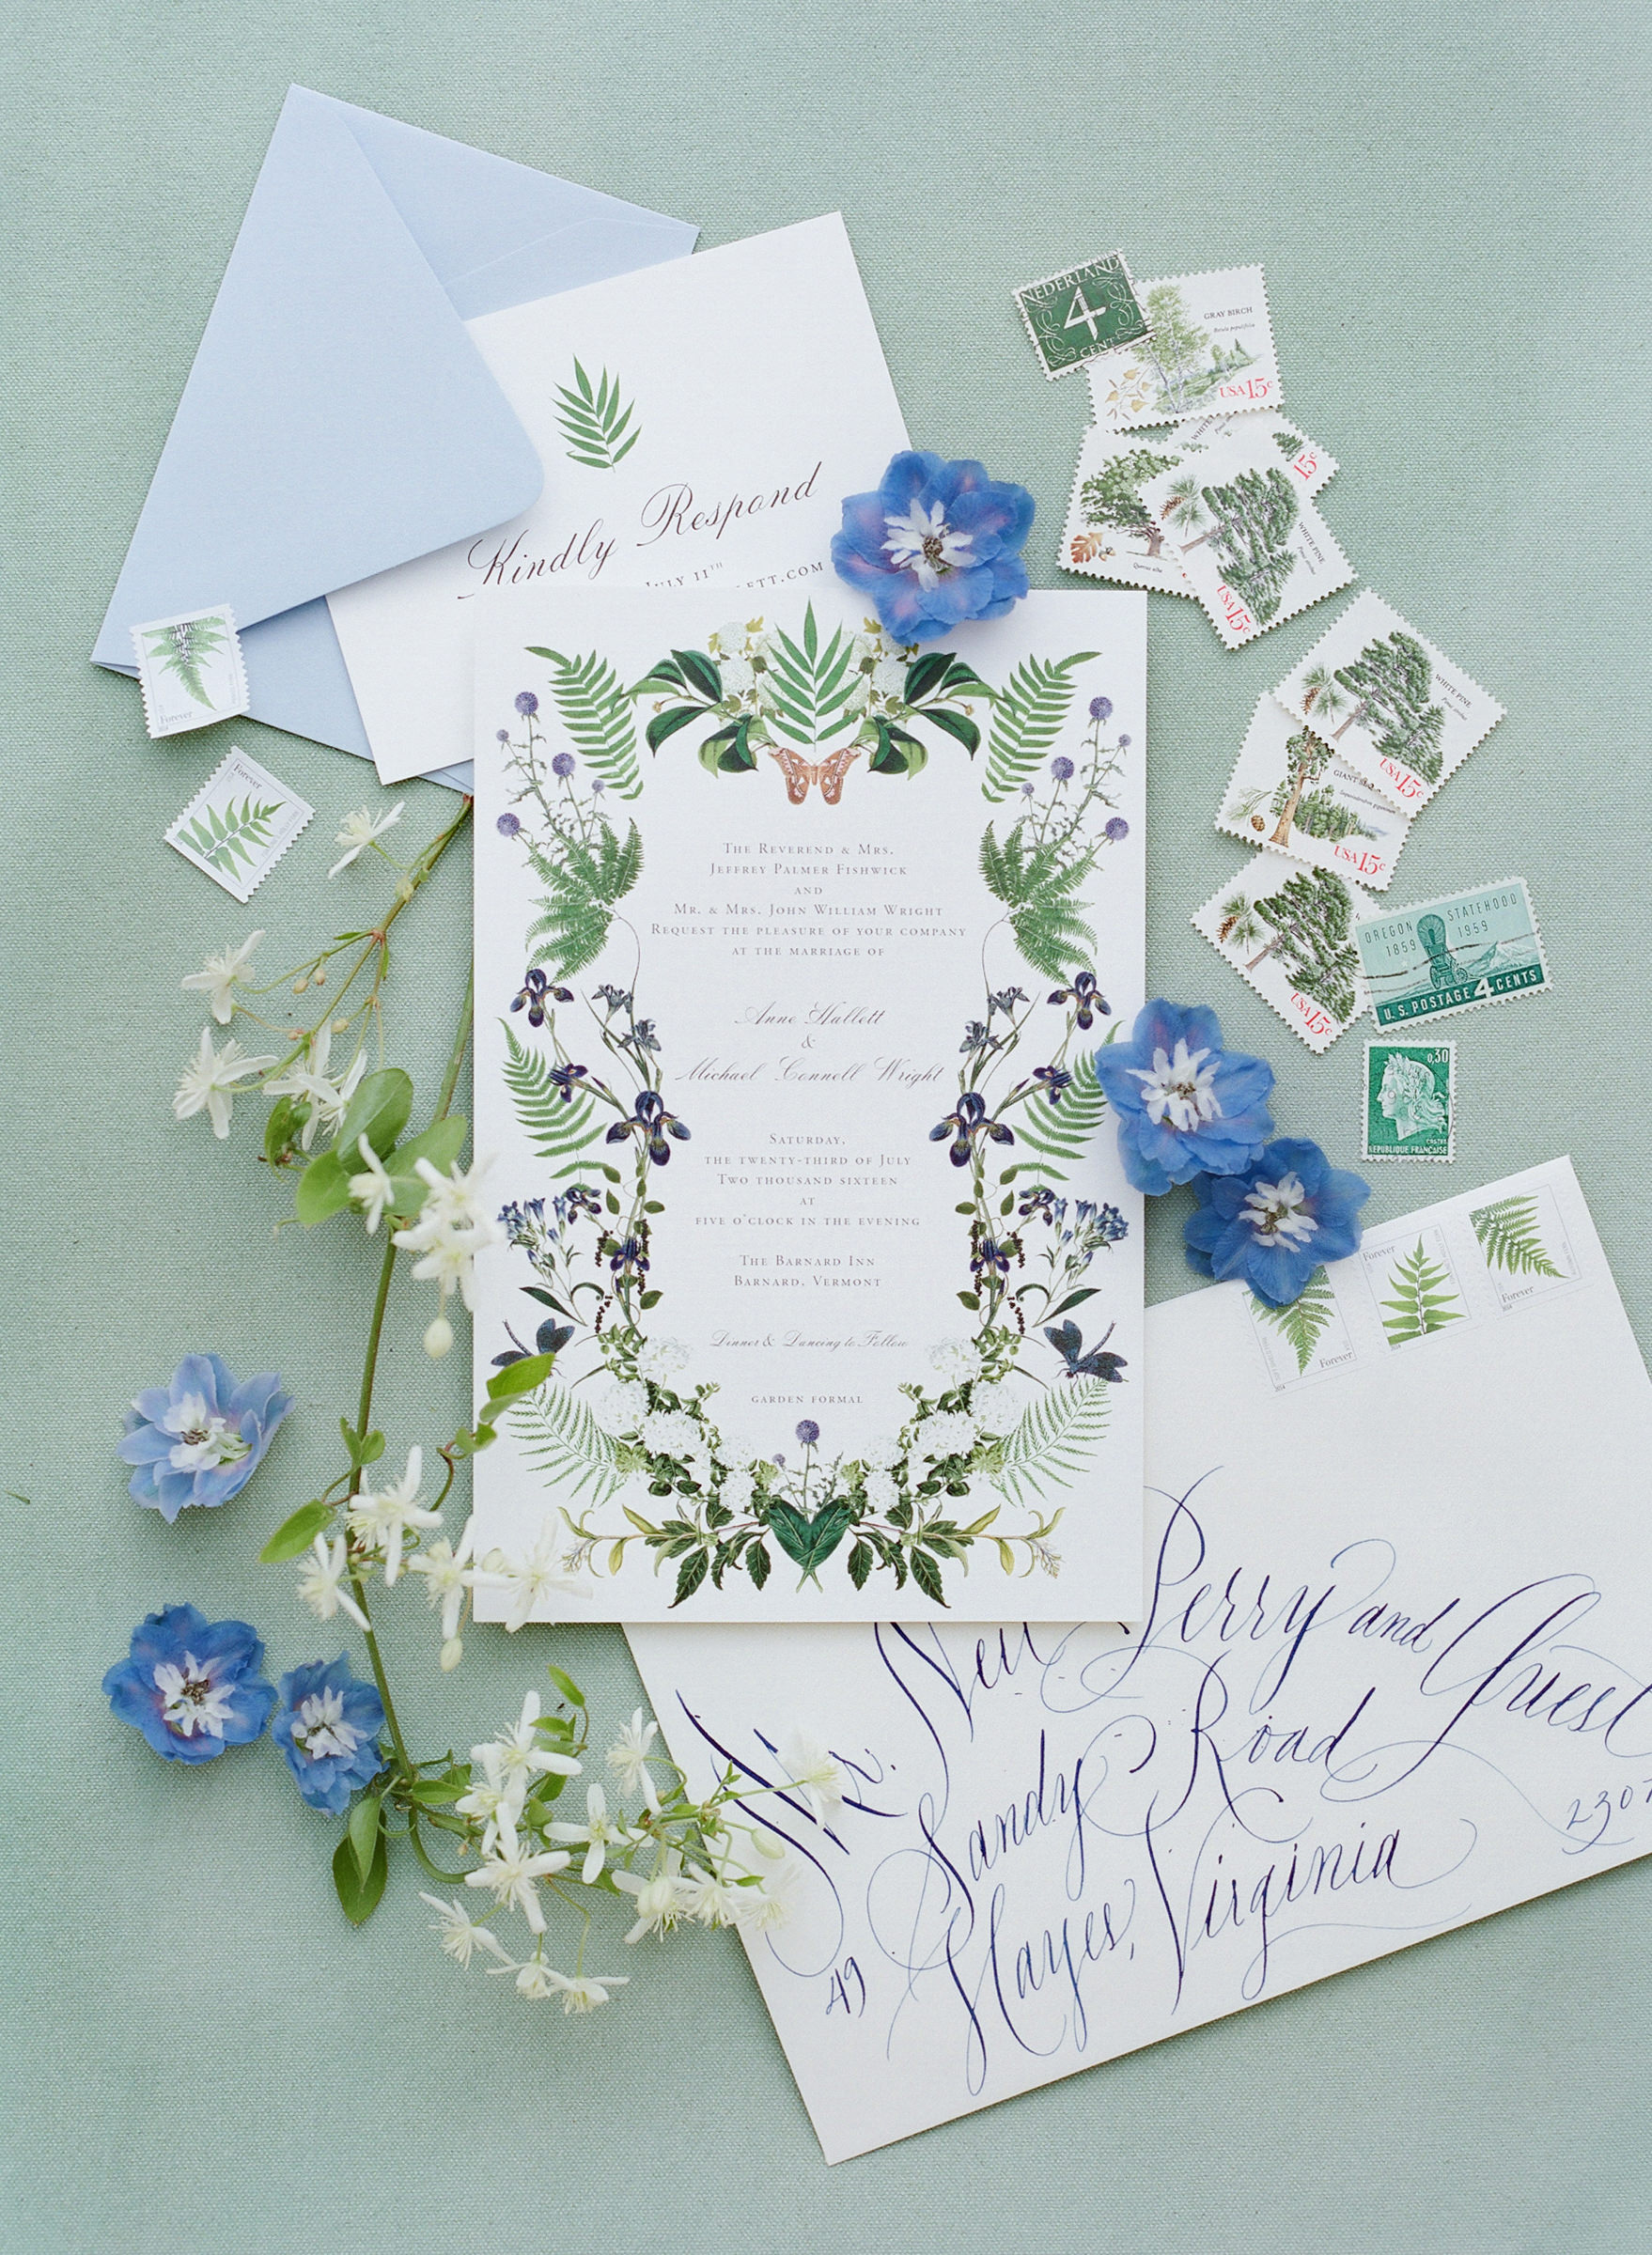 Floral and fern wedding invitations with blue envelopes - photo by Corbin Gurkin